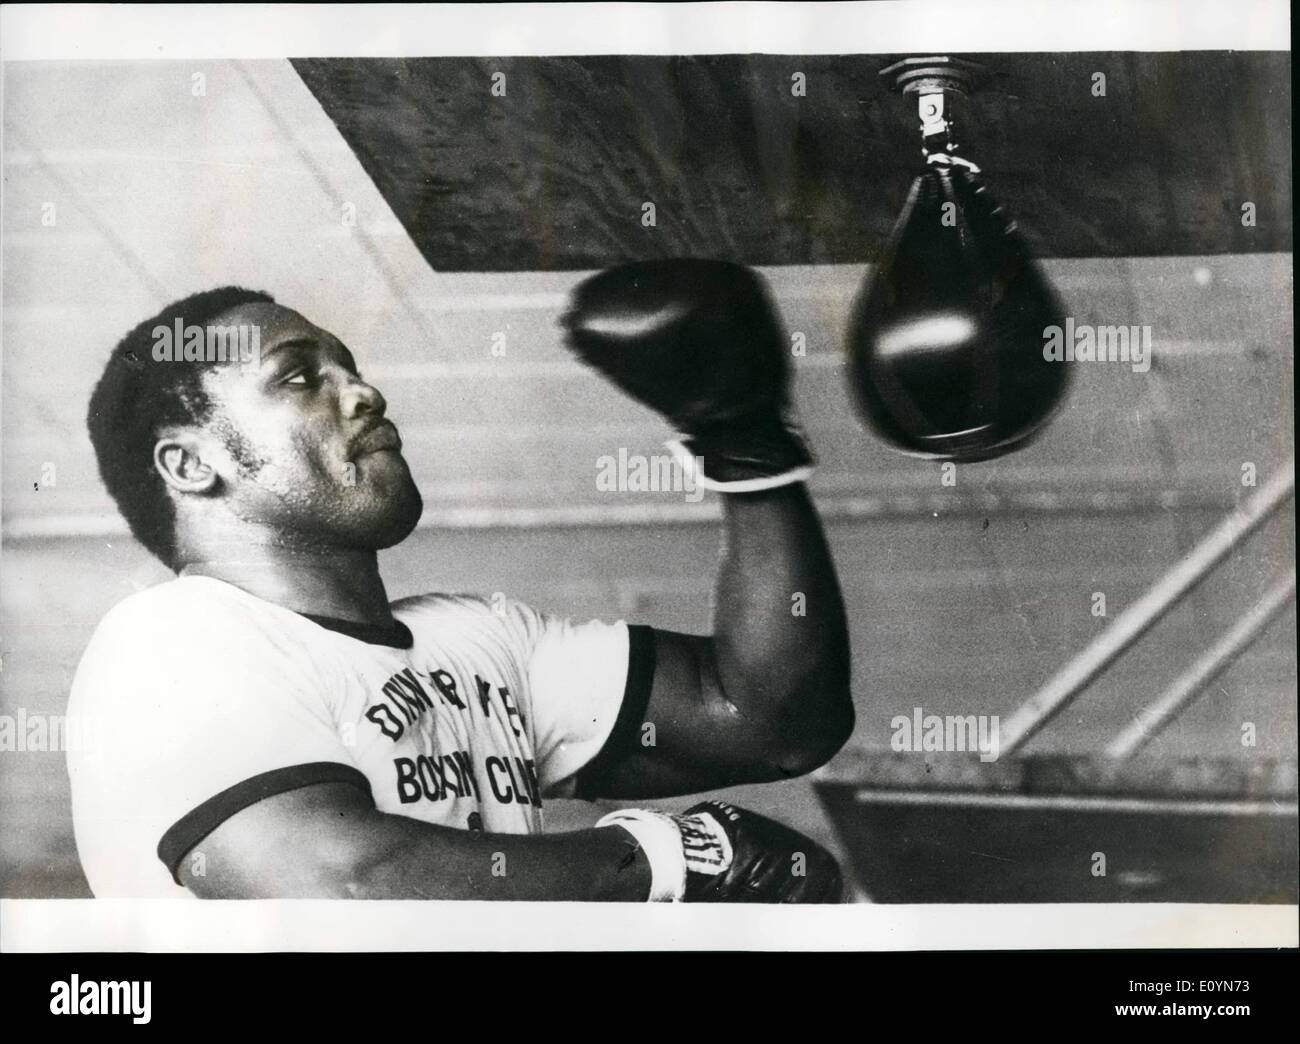 Nov. 11, 1970 - Joe Frazier to meet bob Foster. Joe Frazier, will meet Bob Foster, the cruiser weight champion of the world from Albuquerque, new Mexico for the heavyweight championship of the world, in Detroit. photo shows Joe Frazier, who meets Bob Foster for the heavyweight championship of the world next Wednesday. - Stock Image